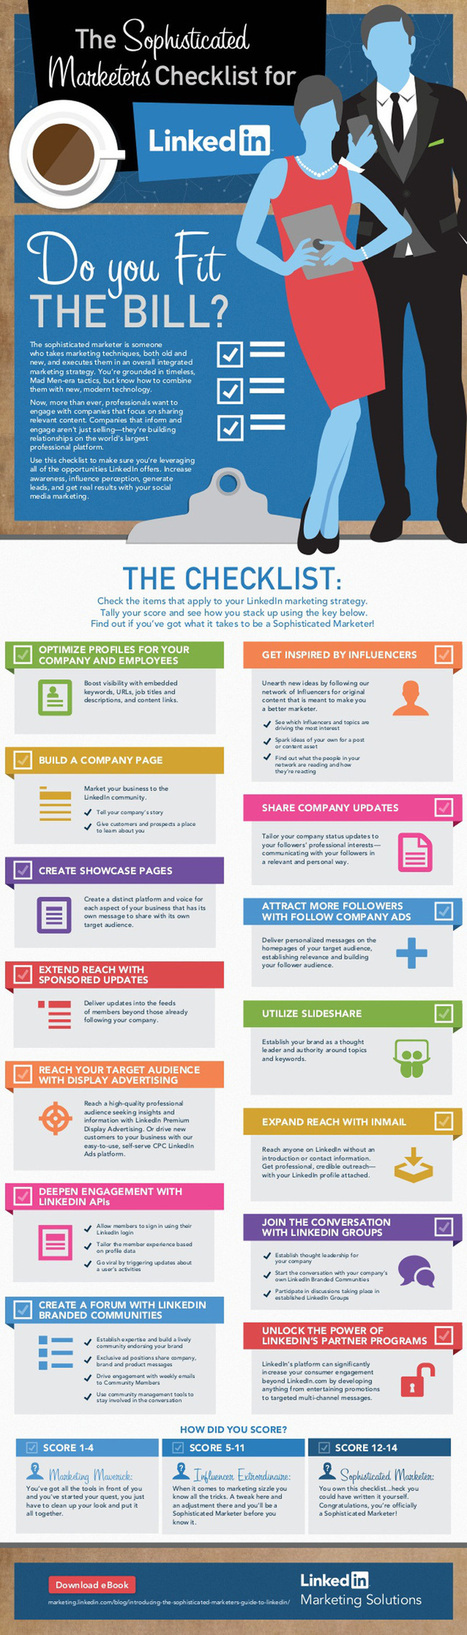 The Sophisticated Marketer's Guide to LinkedIn, an infographic | Intriguing, interesting Infographics | Scoop.it